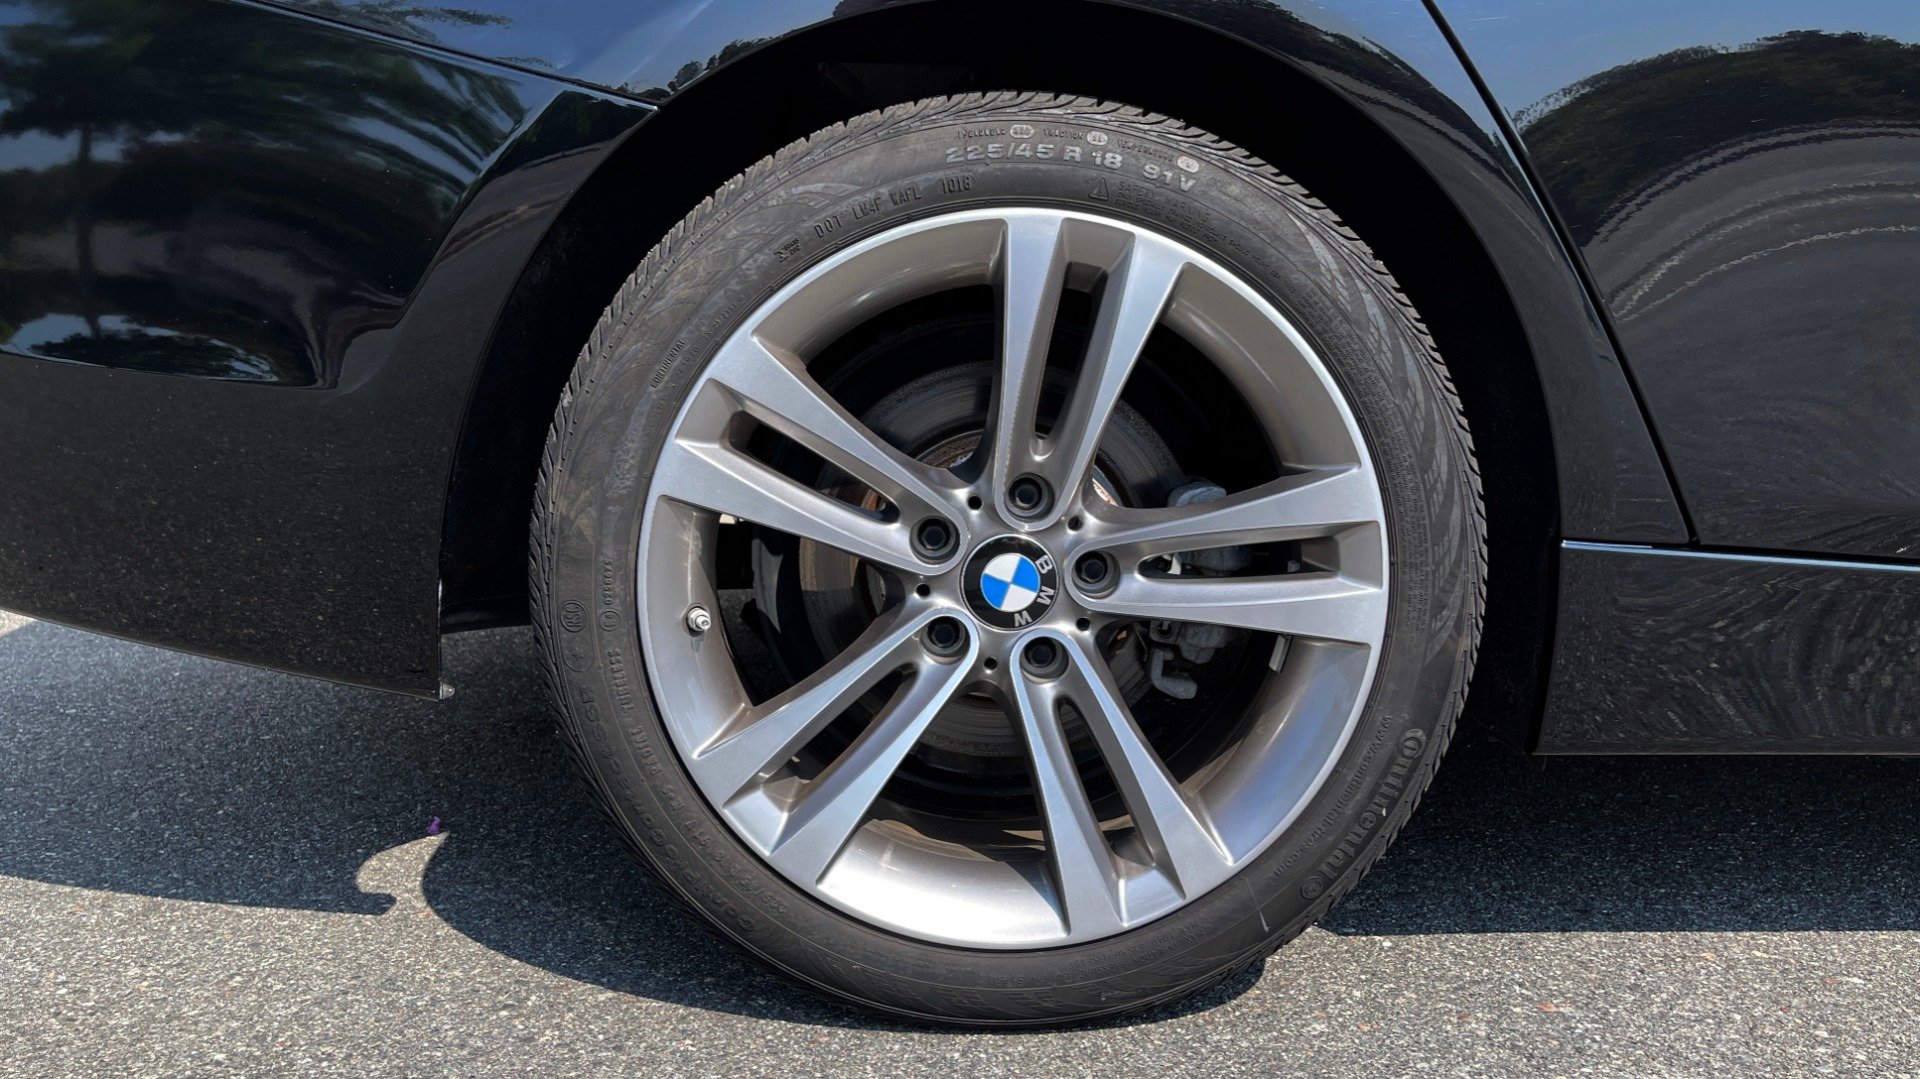 Used 2018 BMW 3 SERIES 330I XDRIVE / CONV PKG / SUNROOF / HTD STS / ABSD / REARVIEW for sale $30,695 at Formula Imports in Charlotte NC 28227 73